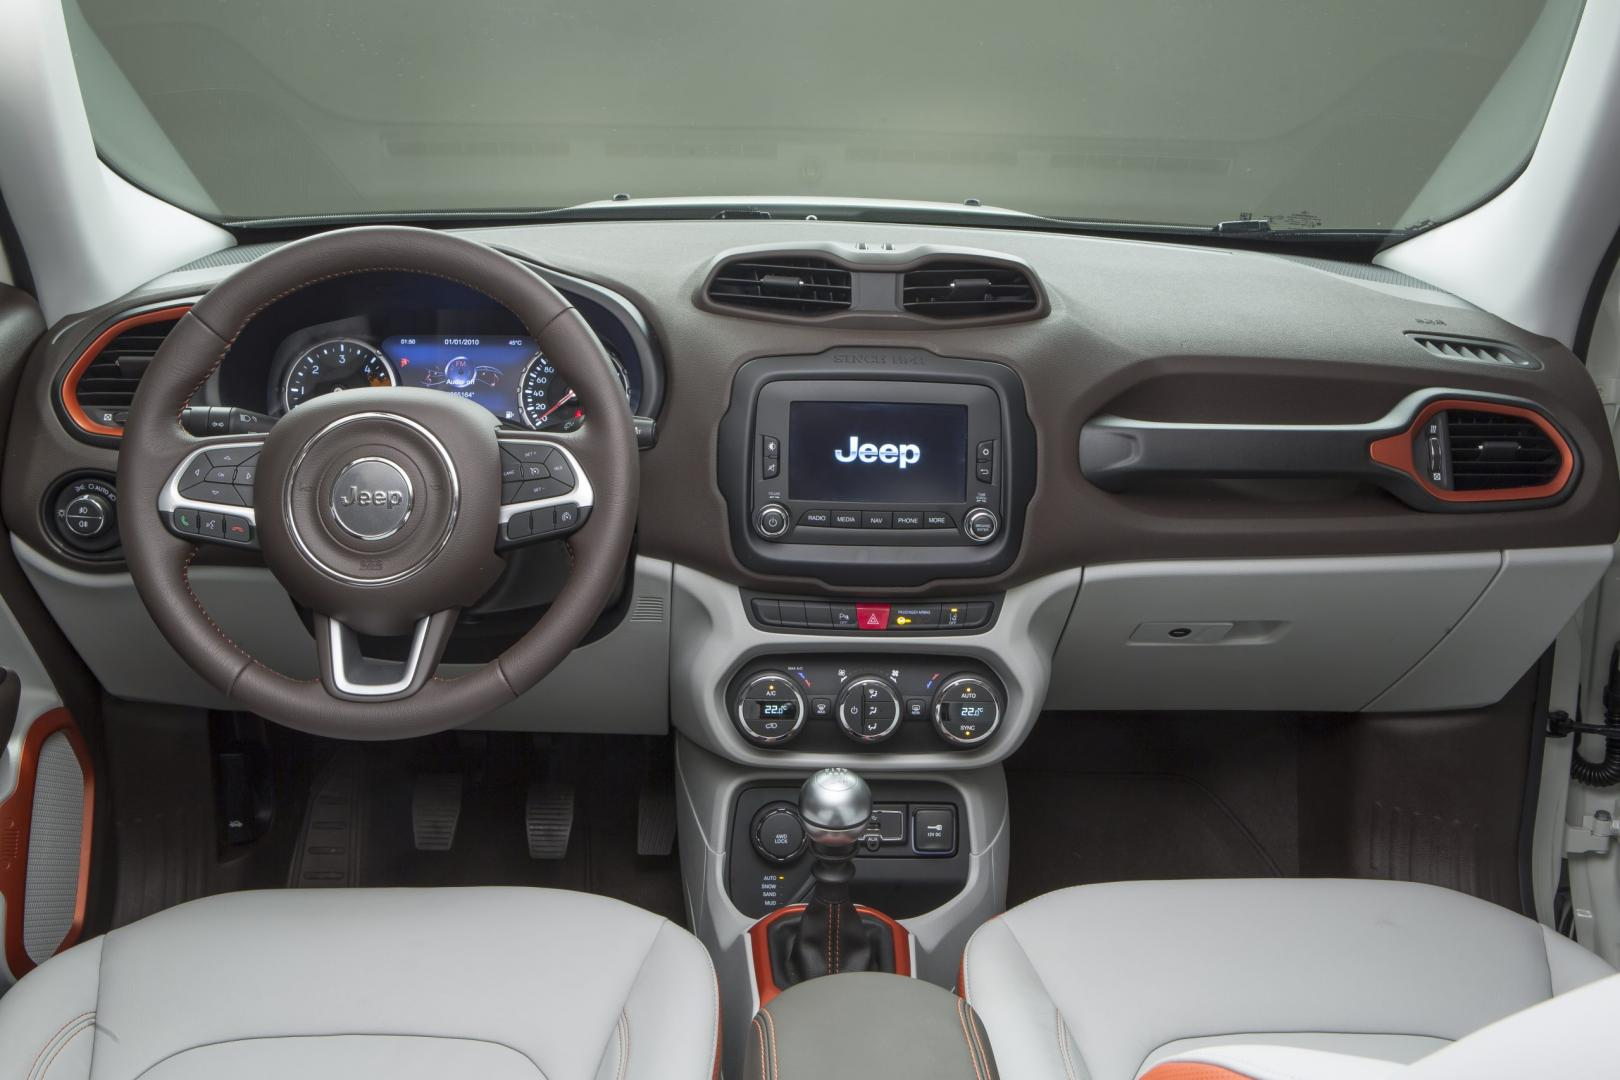 Jeep Renegade 2.0 Limited 4WD interieur (2014)